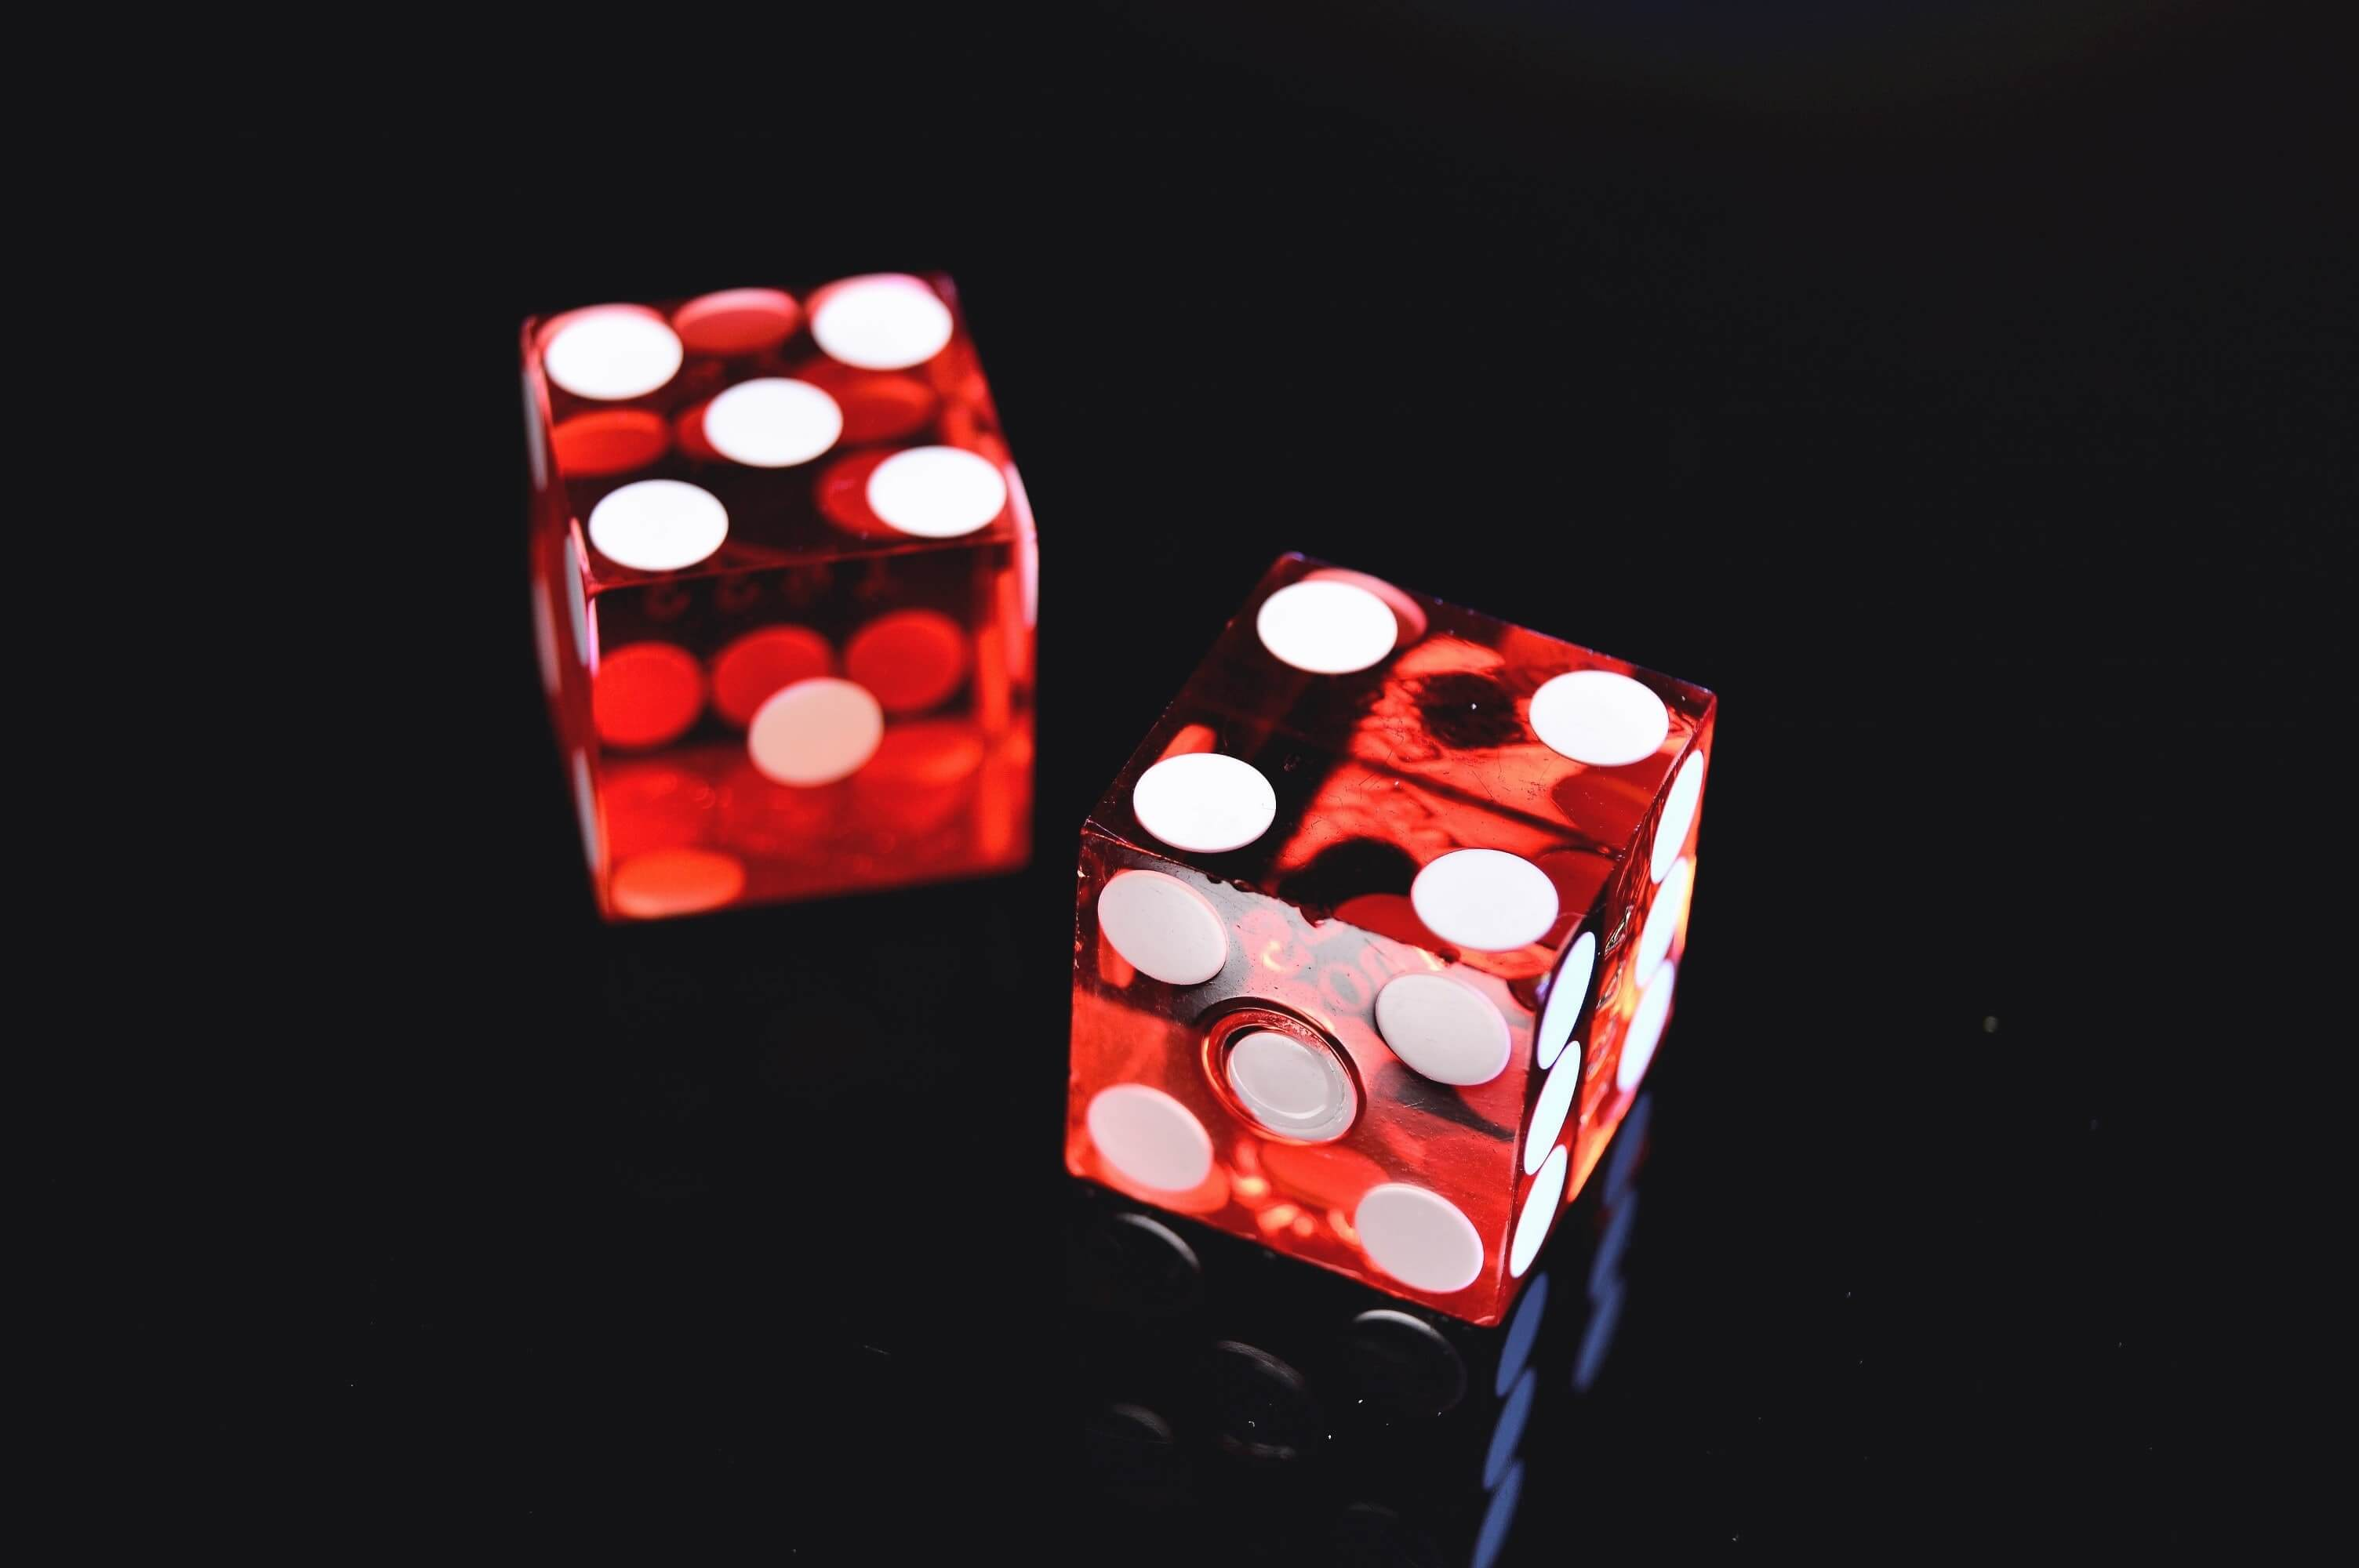 Bitcoin Casinos and iGaming: The Rise of Crypto-payments